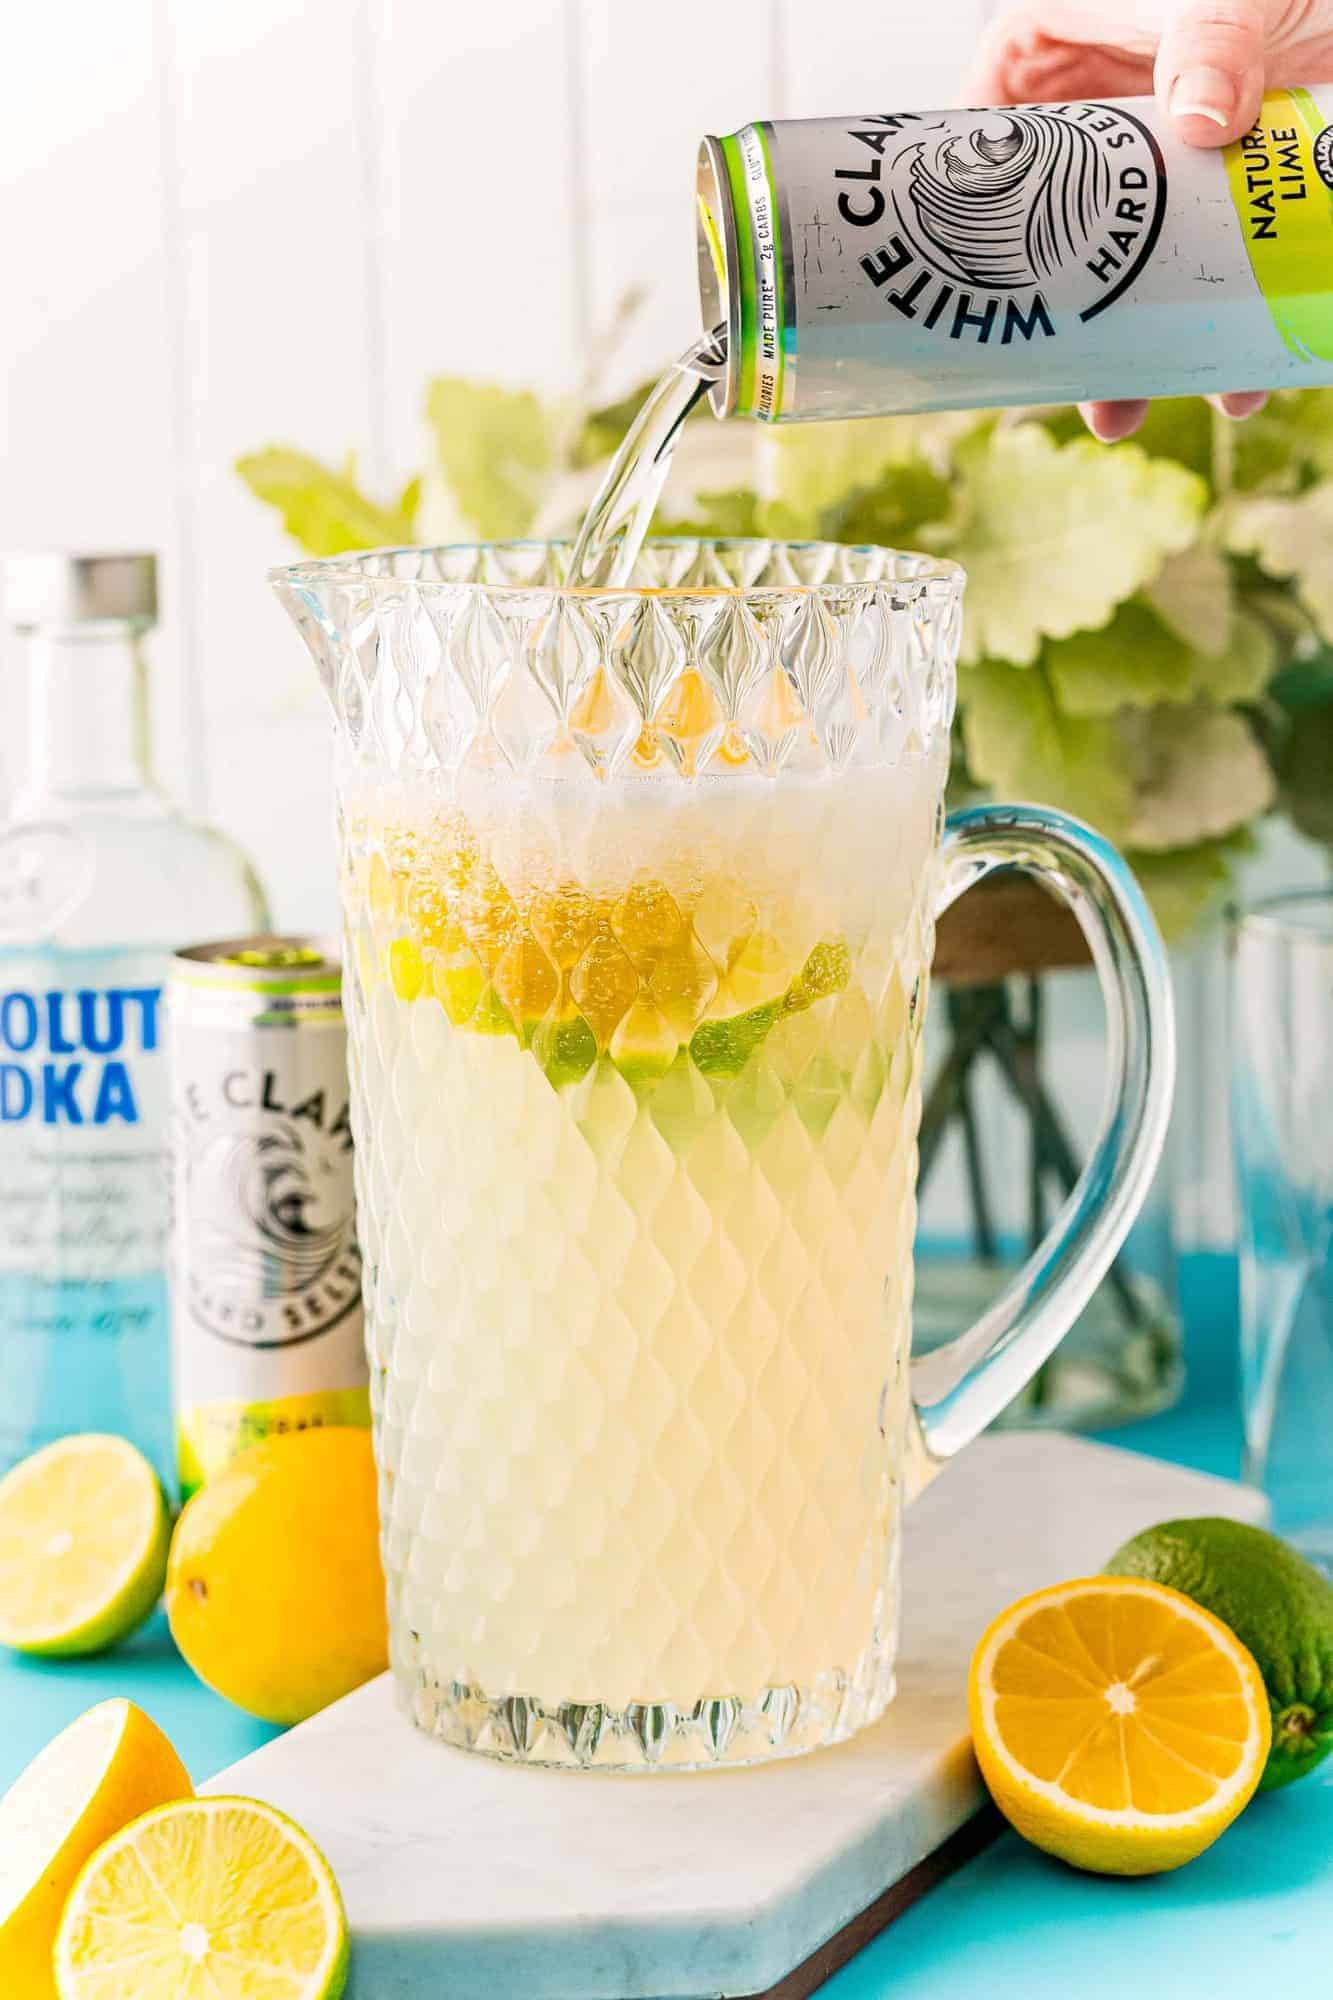 White claw being poured into a large pitcher of lemonade.